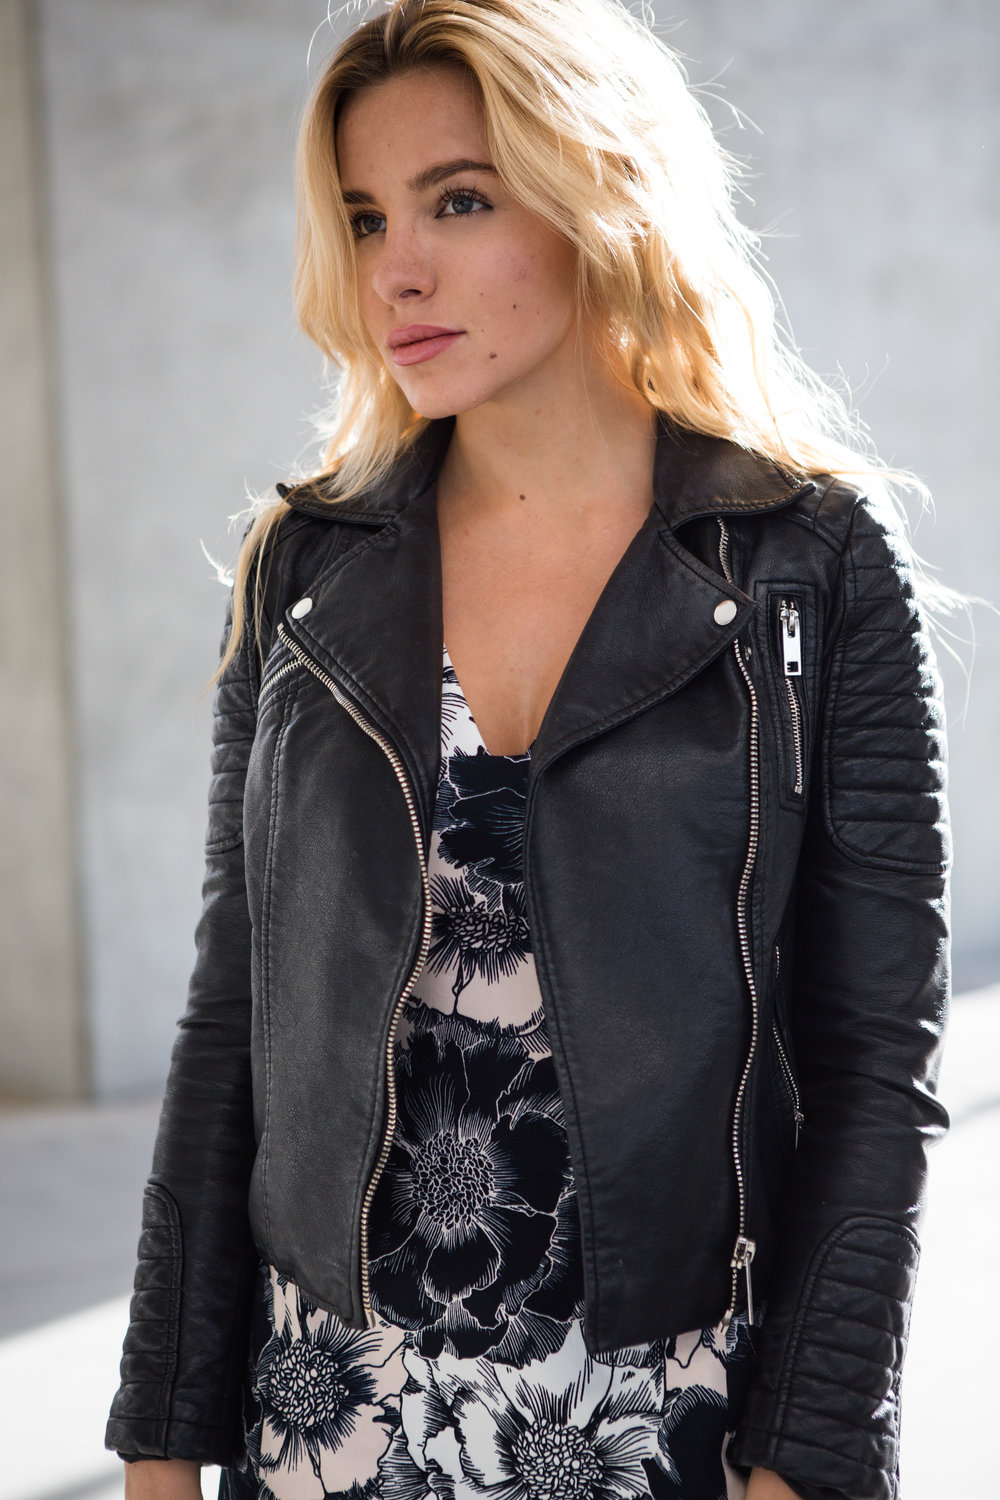 blonde girl wearing leather jacket and floral dress